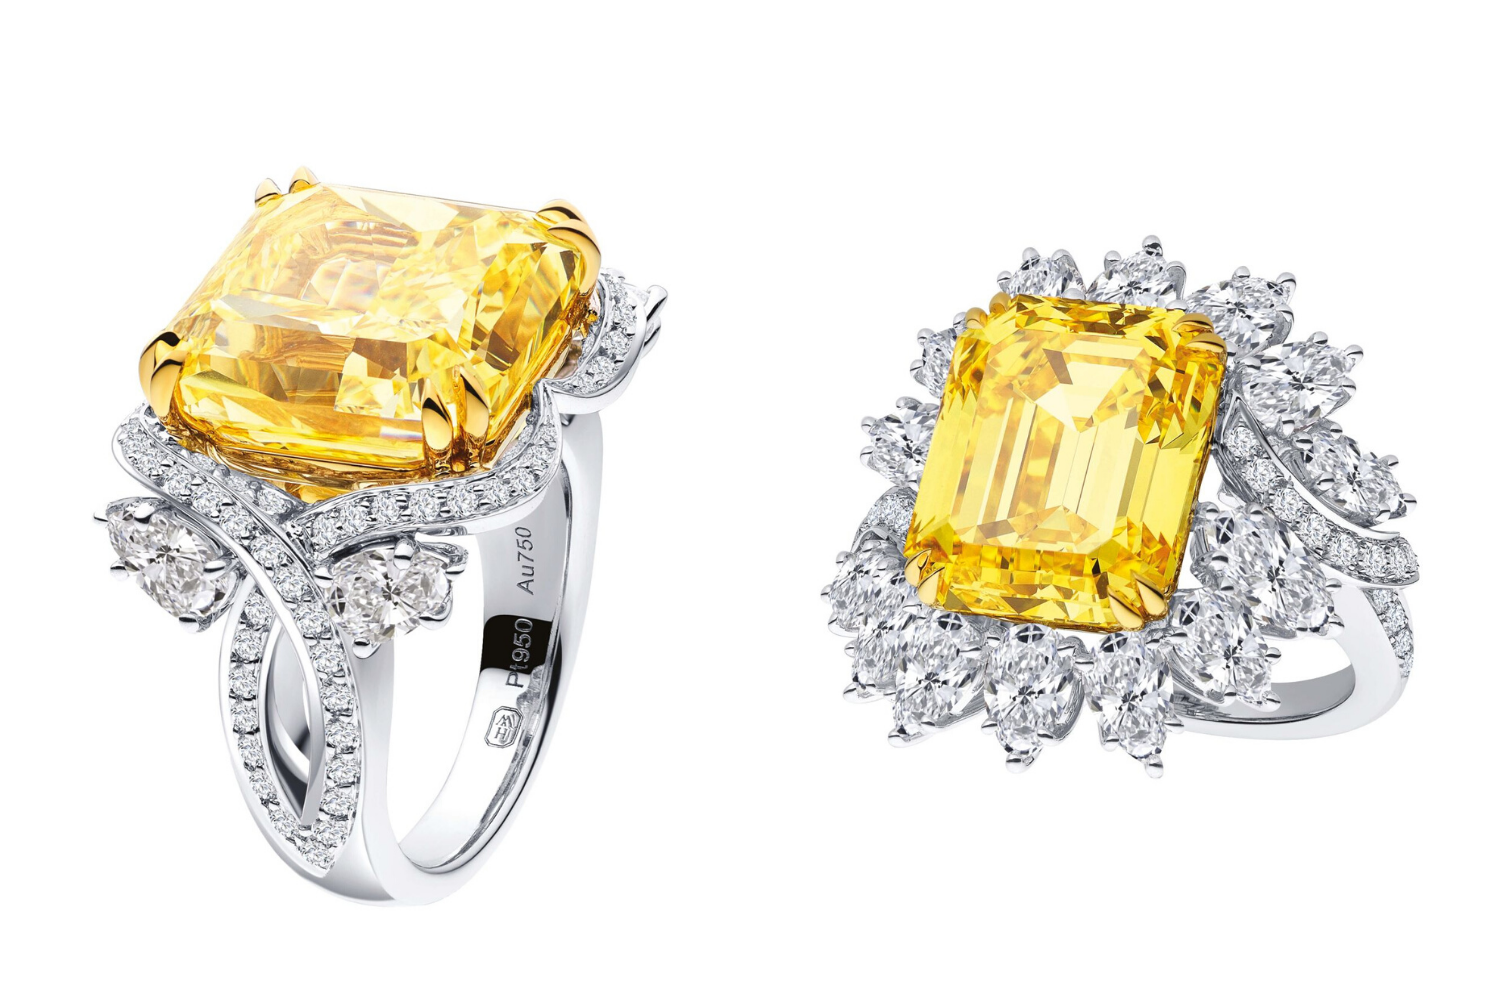 Yellow Diamonds Take Centre Stage in Harry Winston's Autumn High Jewellery Collection